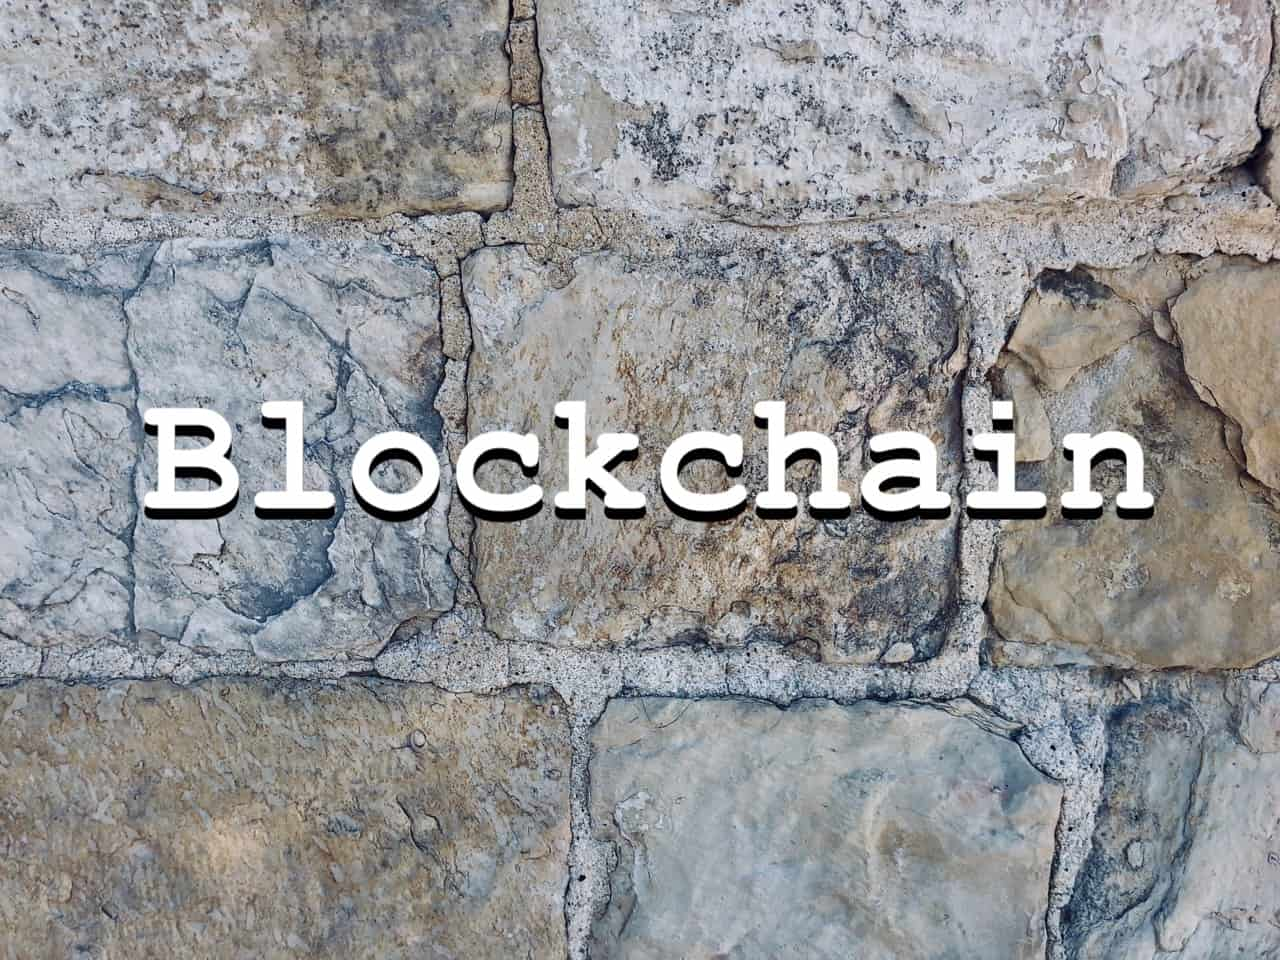 IBM Blockchain World Wire Set to Support Payments & Foreign Exchange to More Than 50 Countries